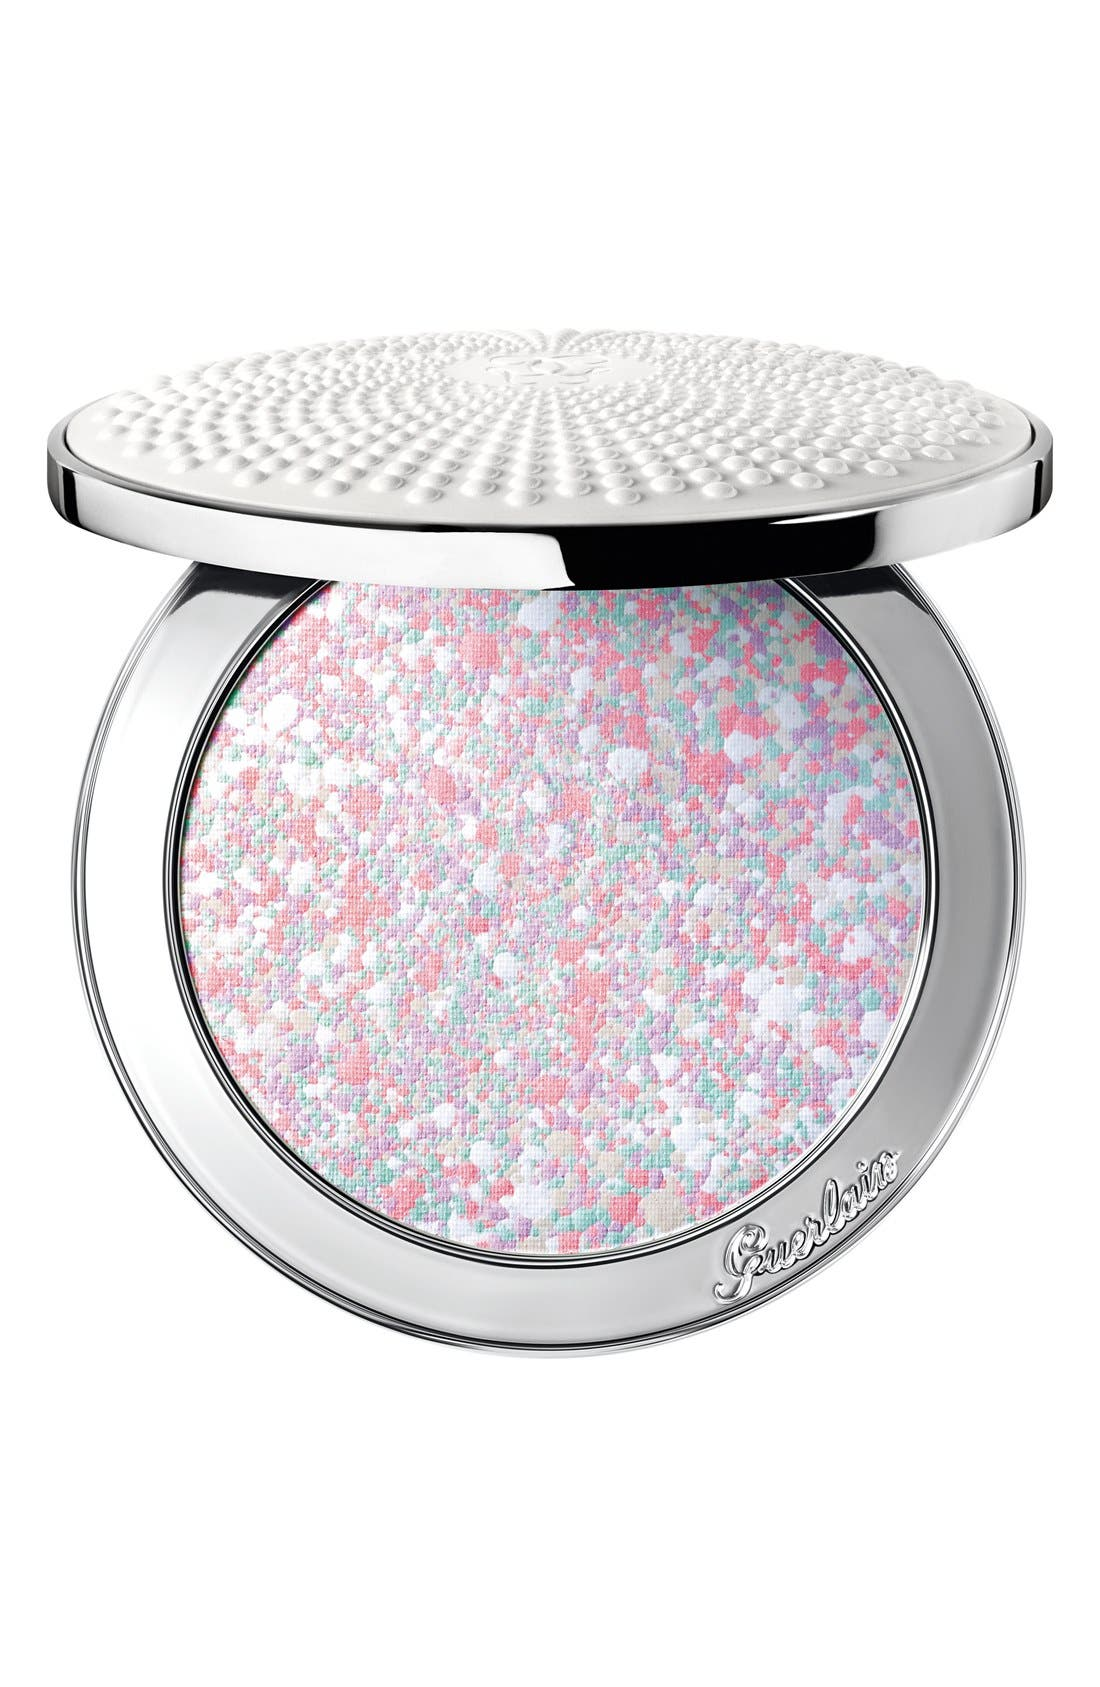 Météorites Voyage Pearls of Powder Refillable Compact,                             Main thumbnail 1, color,                             NO COLOR